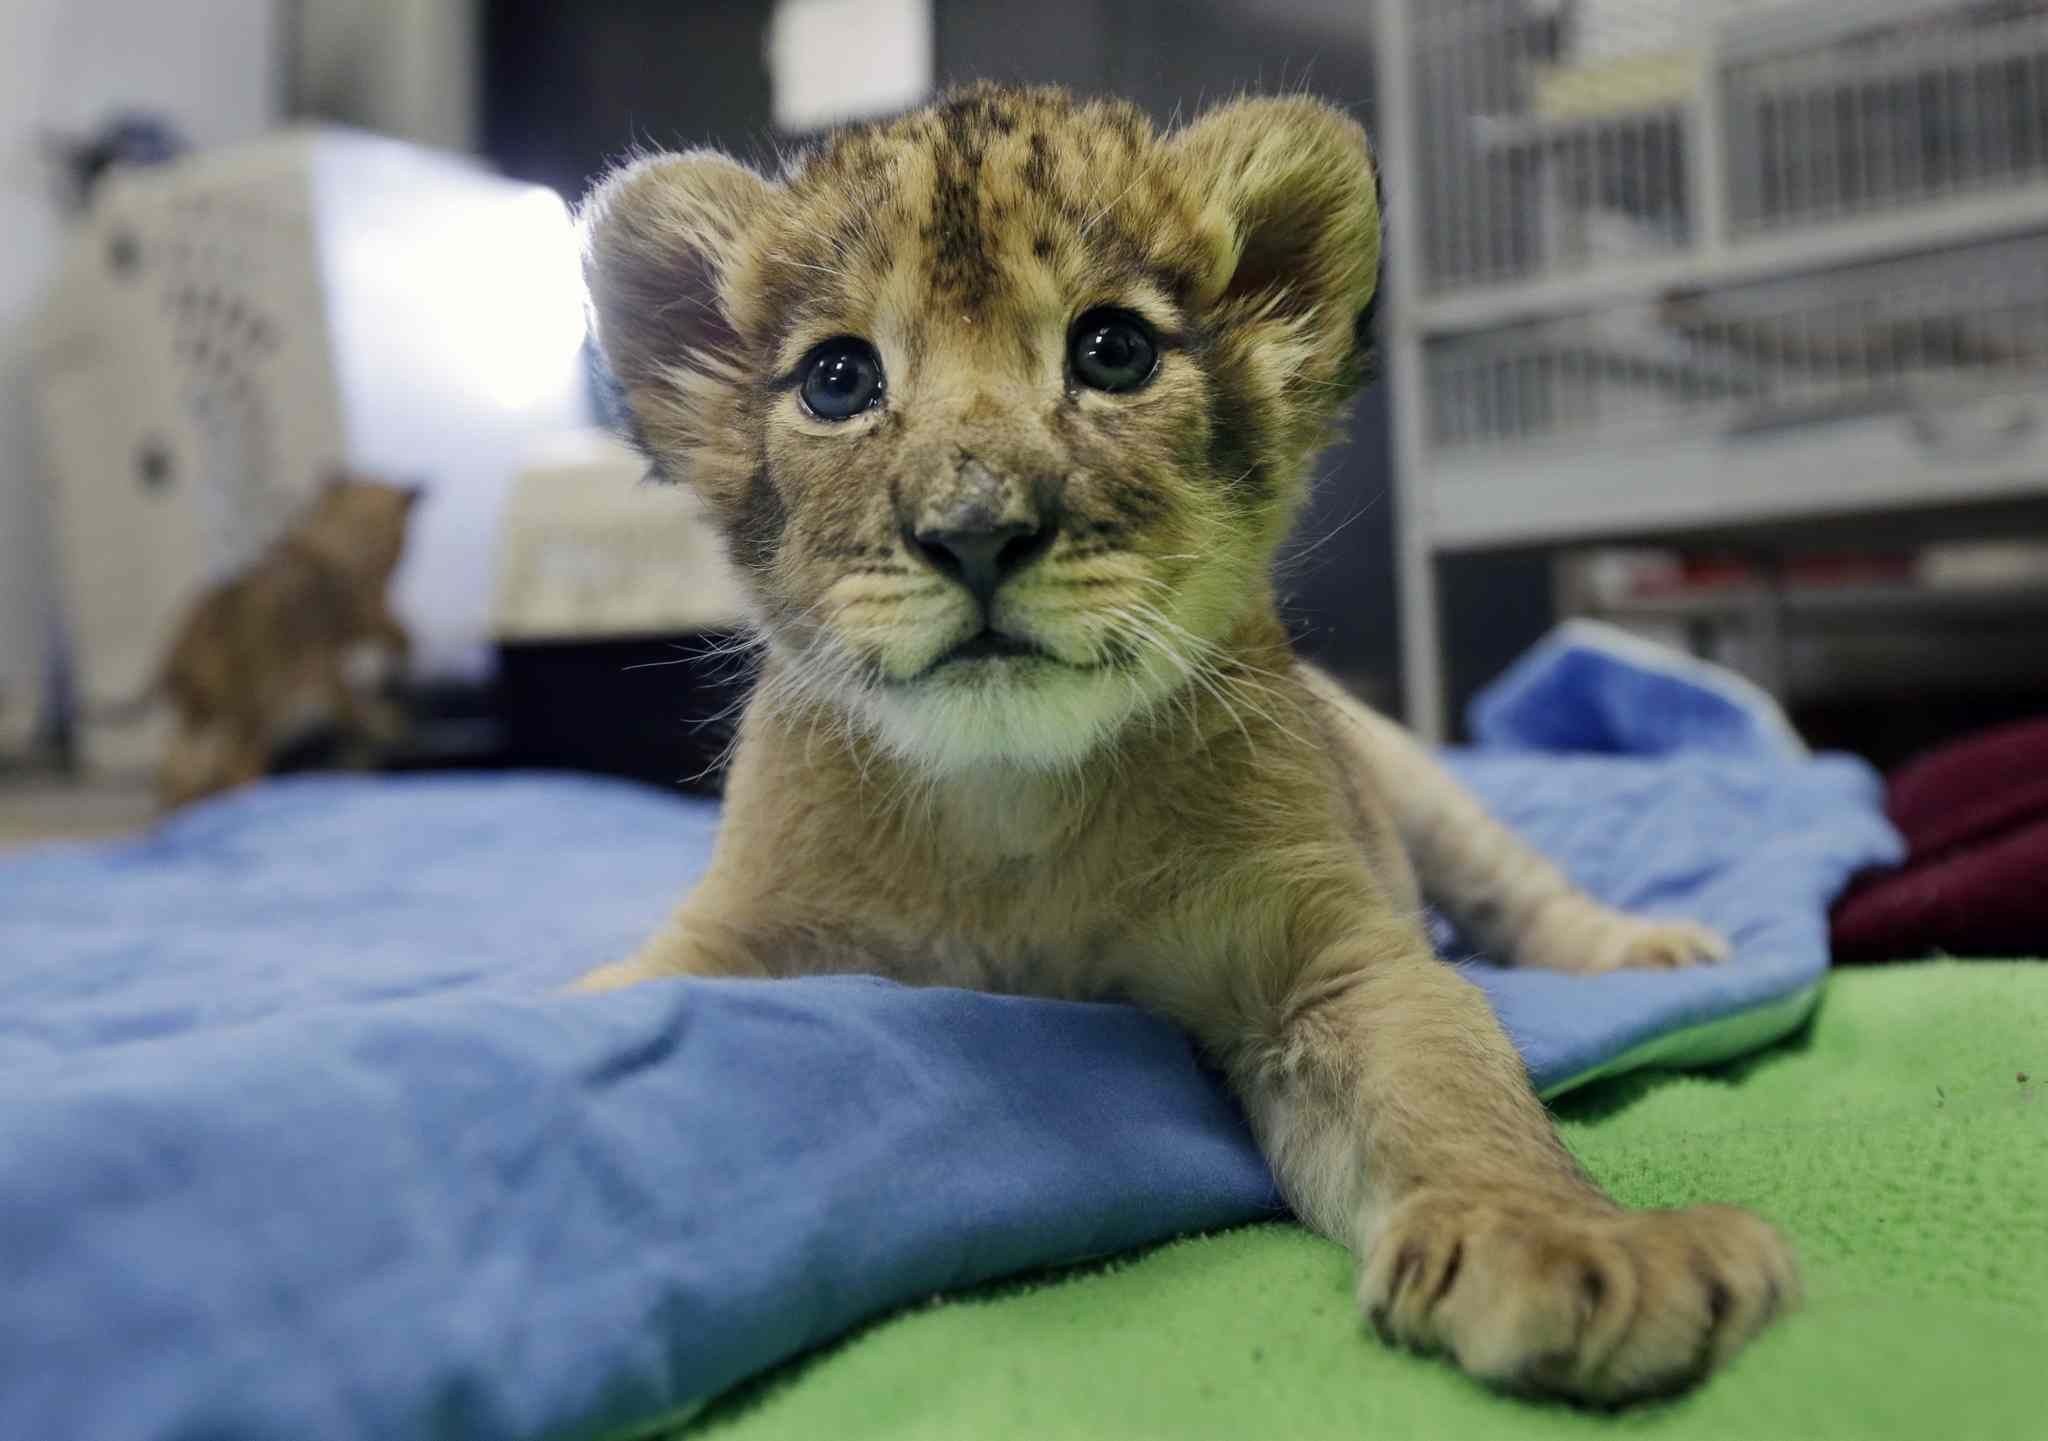 One-month old African lion cub, Kiume plays at the veterinarian office Three baby lion cubs at Six Flags Great Adventure and Safari Thursday, March 6, 2014, in Jackson, N.J. Three baby African lion cubs, Kiume, and two month old brothers, Kanu and Kondo, live at the park in central New Jersey. The park says its animal care team has become surrogate mother to the cubs due to medical distress and lack of care by their mothers.